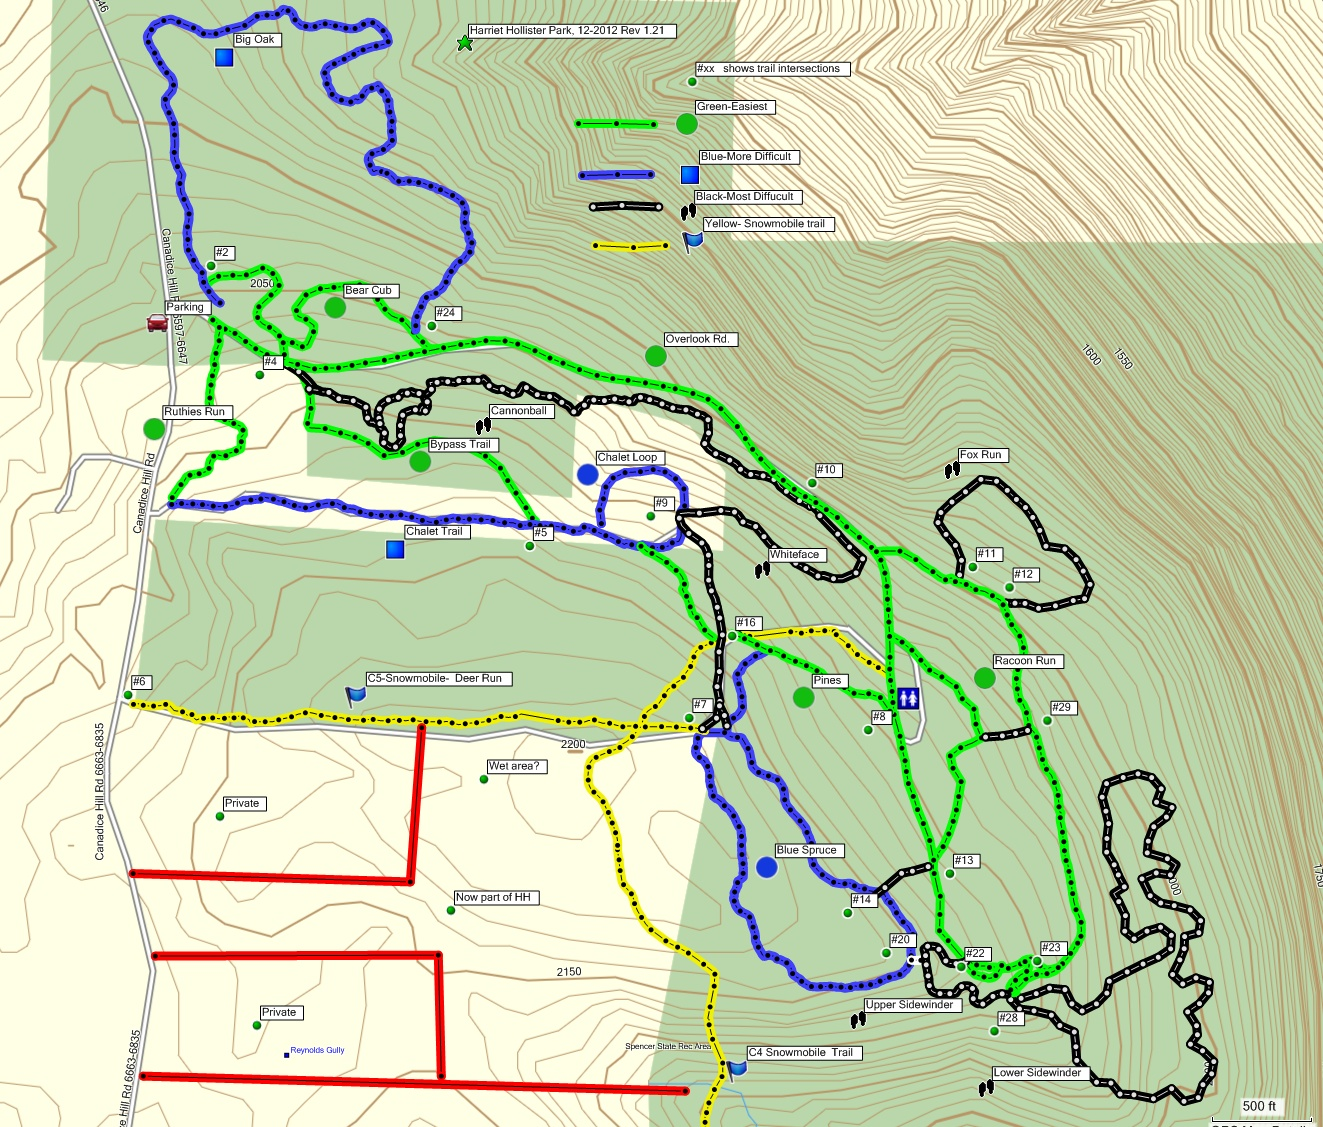 Up to date map of the groomed ski trails at Harriet ... Ski Ny Map on mountain ny map, ski slopes in ny, bike ny map, skiing ny state map, ski resorts in central ny, summer ny map, hunter mt ny map, city ny map, camp ny map, snow ny map, bergen ny map, cypress hill ny map, peak n peak map, ski border, ski resort ny state, hunt ny map, peak peak resort map, cross country skiing places in ny map,